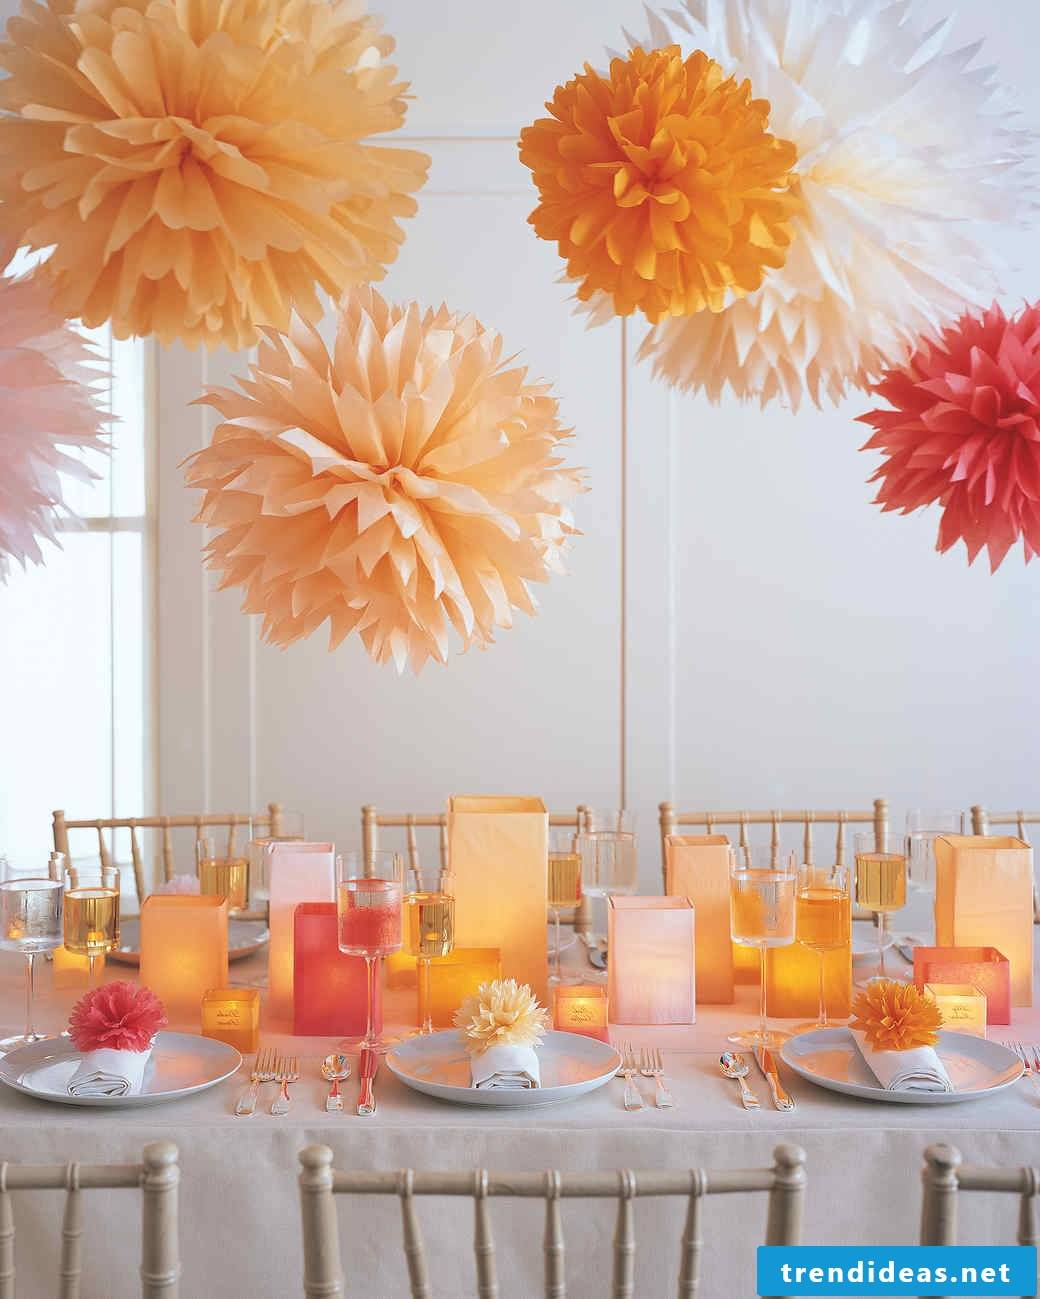 Making pompoms as a party decoration